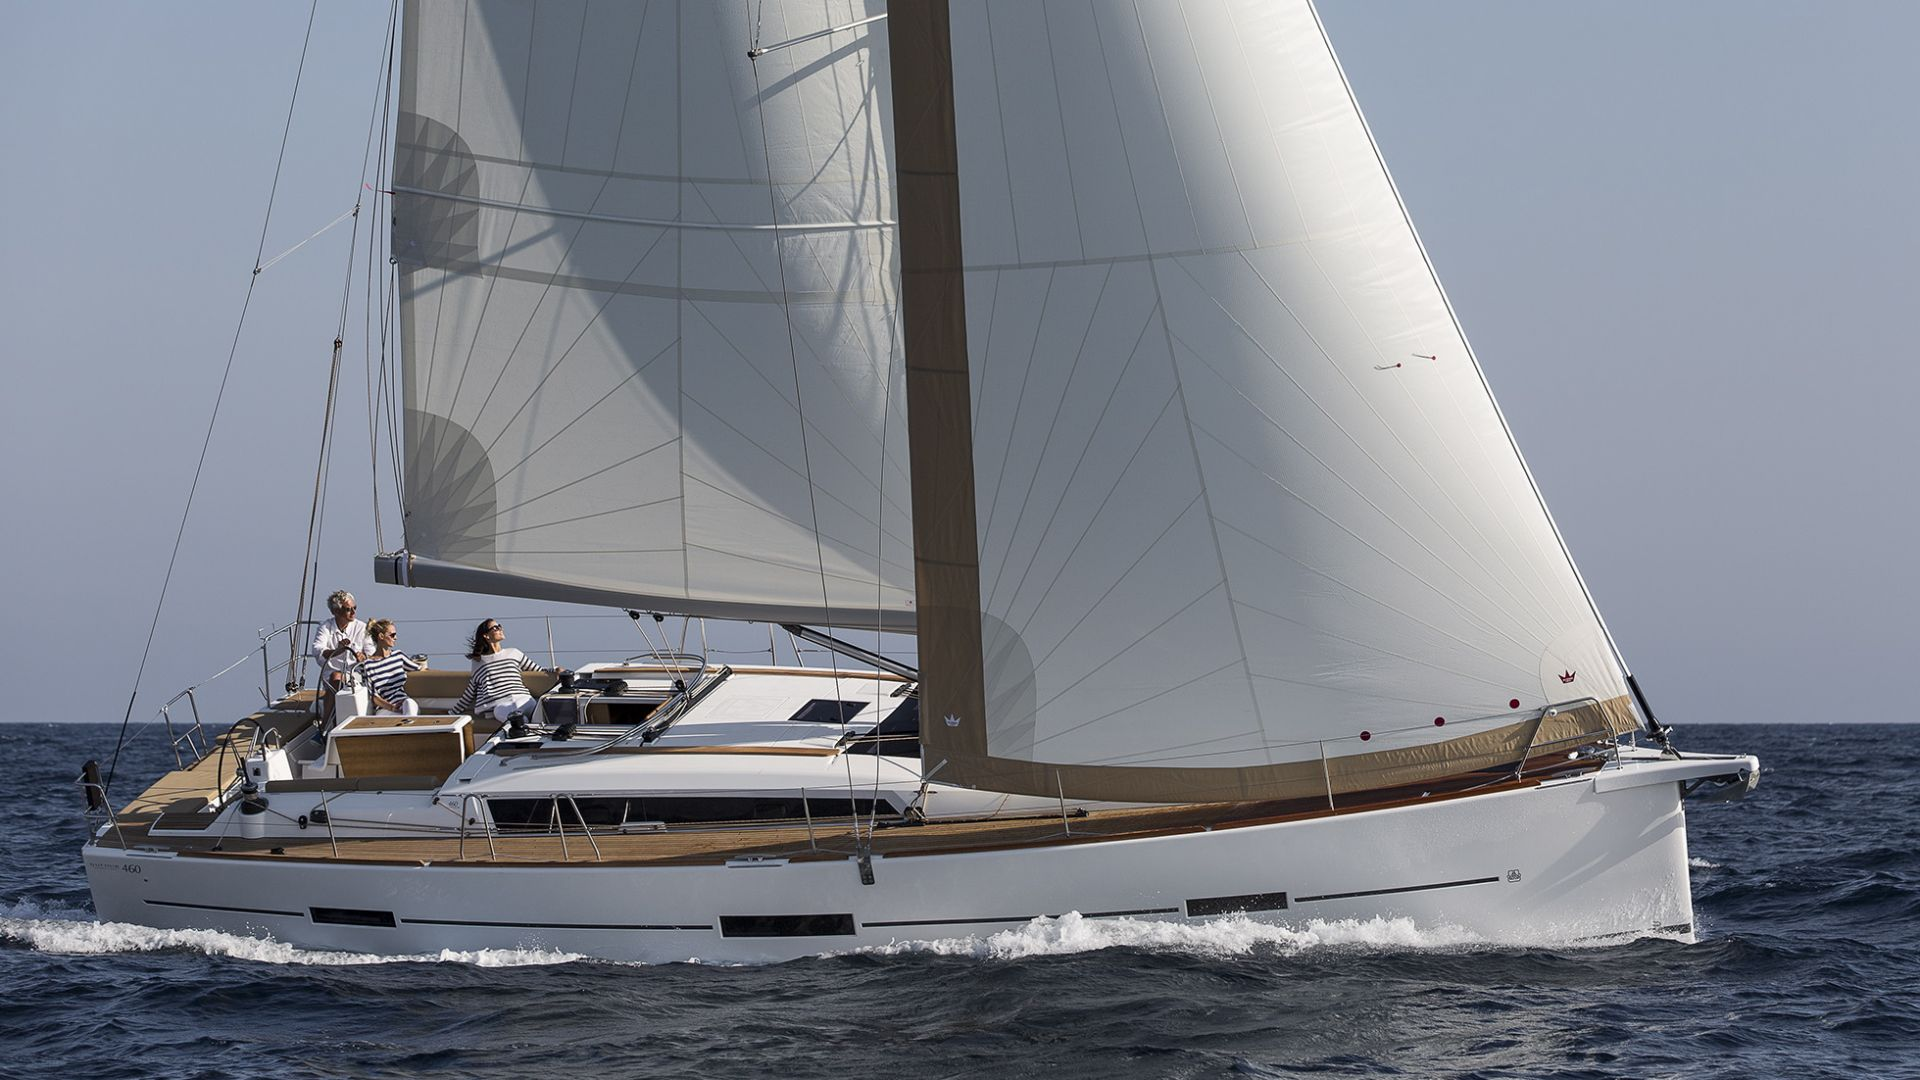 Dufour 460 Prestige - Sailing Yacht for Charter in Greece